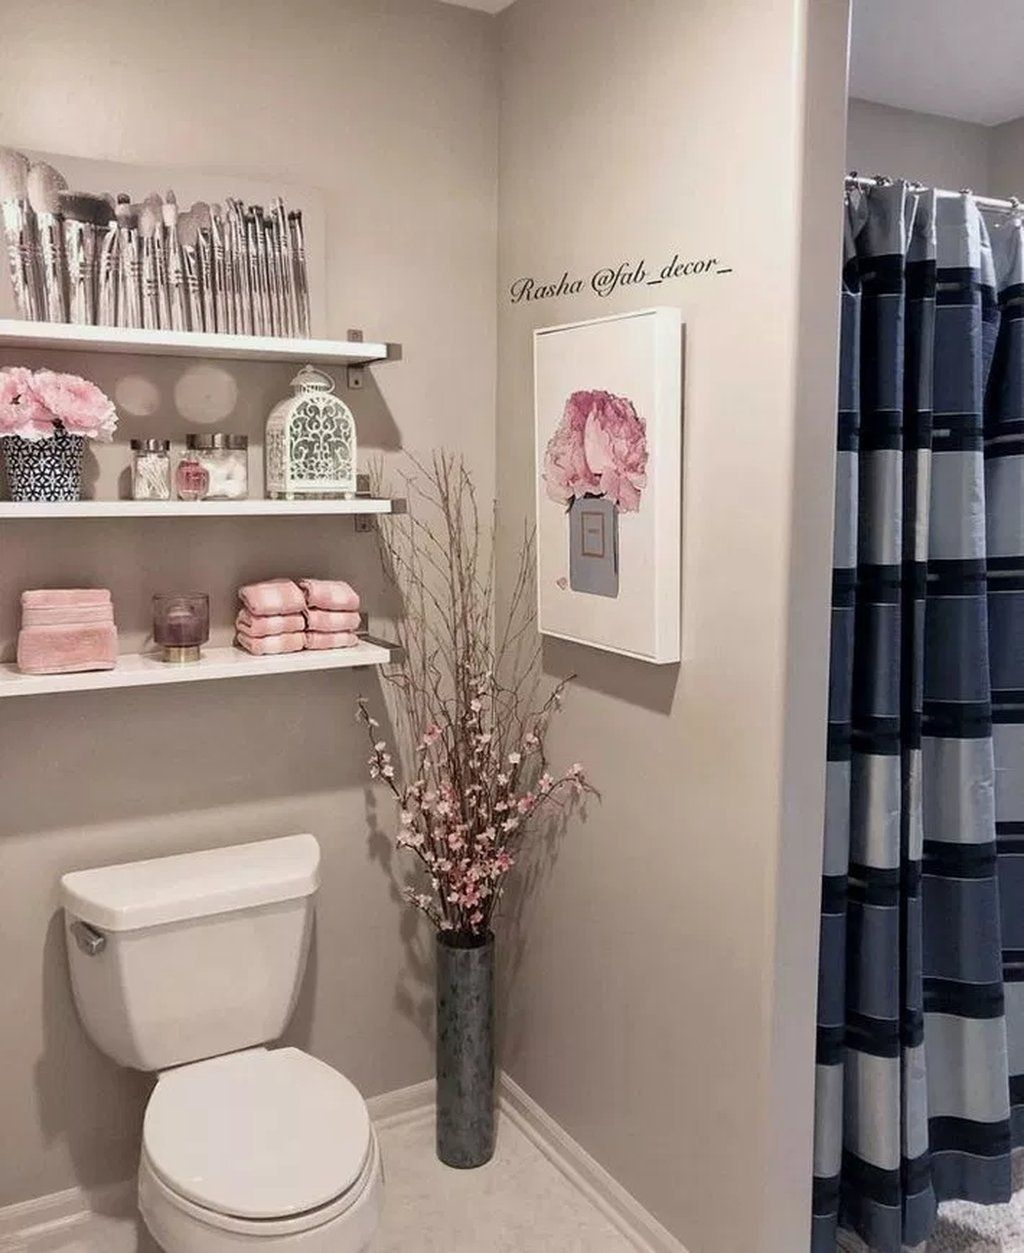 30 Awesome Diy Bathroom Storage Ideas For Solutions Many People Struggle With The Little Storage Space In 2020 Bathroom Decor Apartment Restroom Decor Bathroom Decor